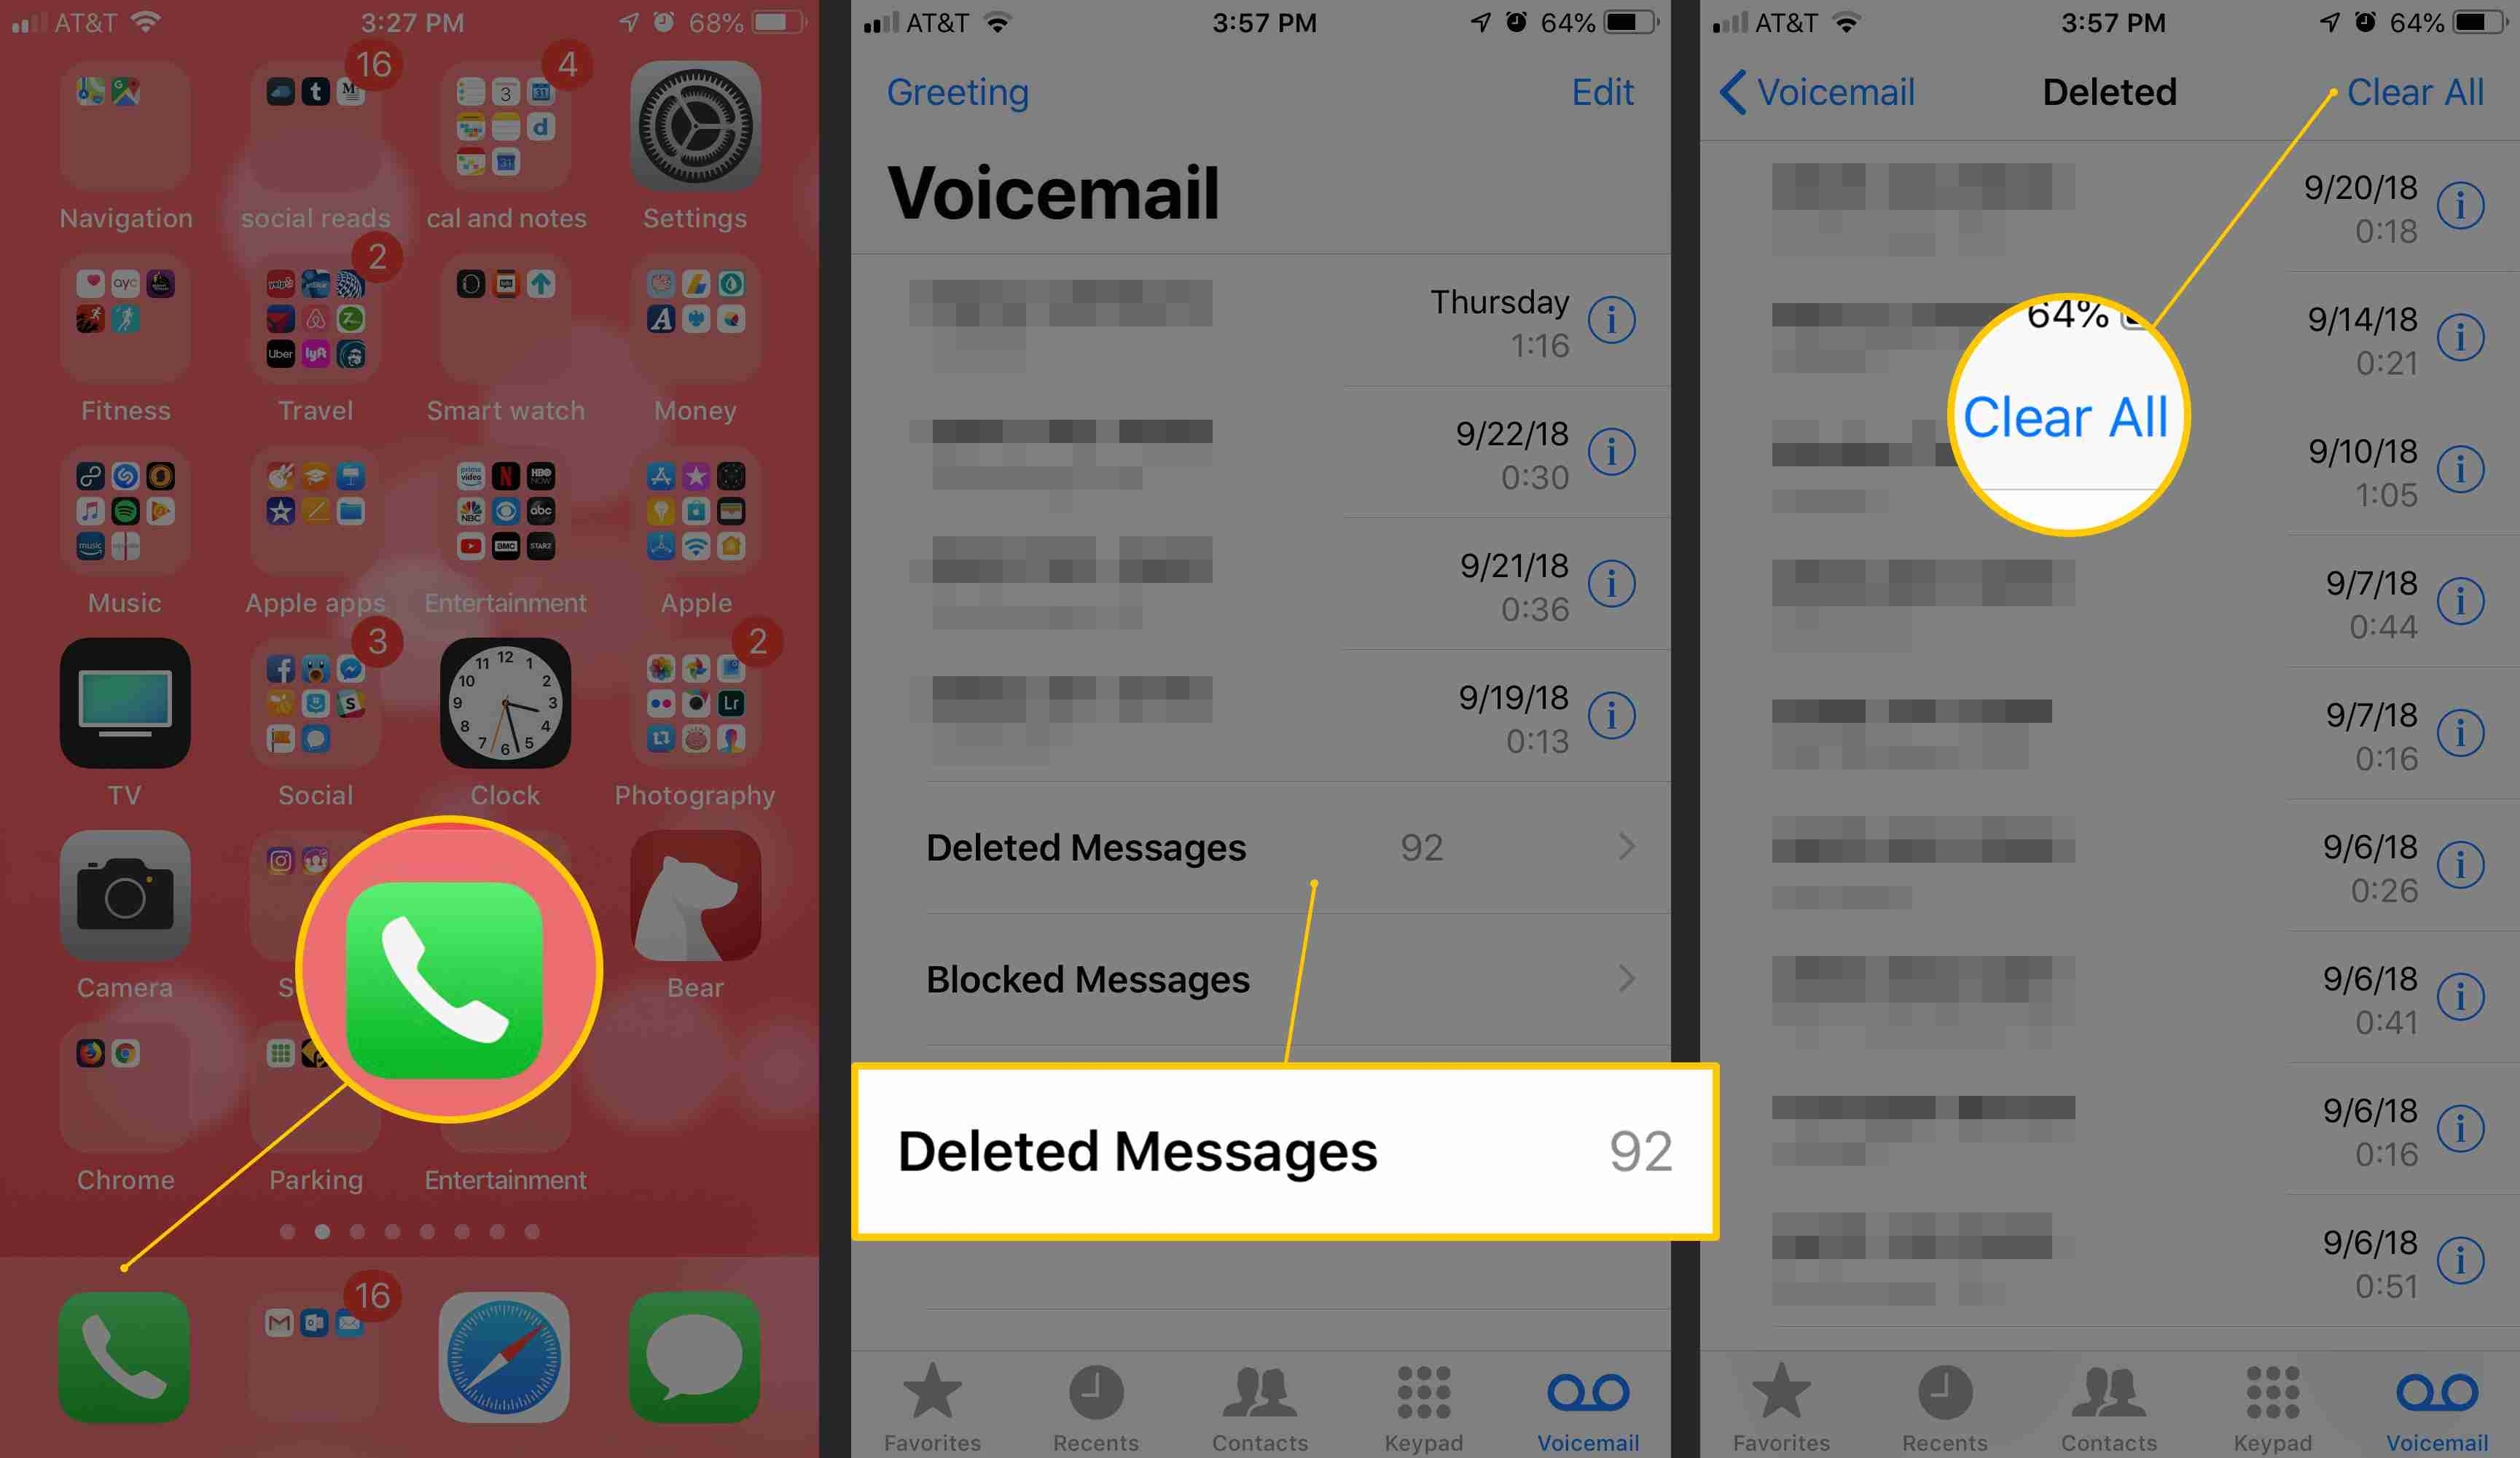 How To Delete Voicemail On Iphone